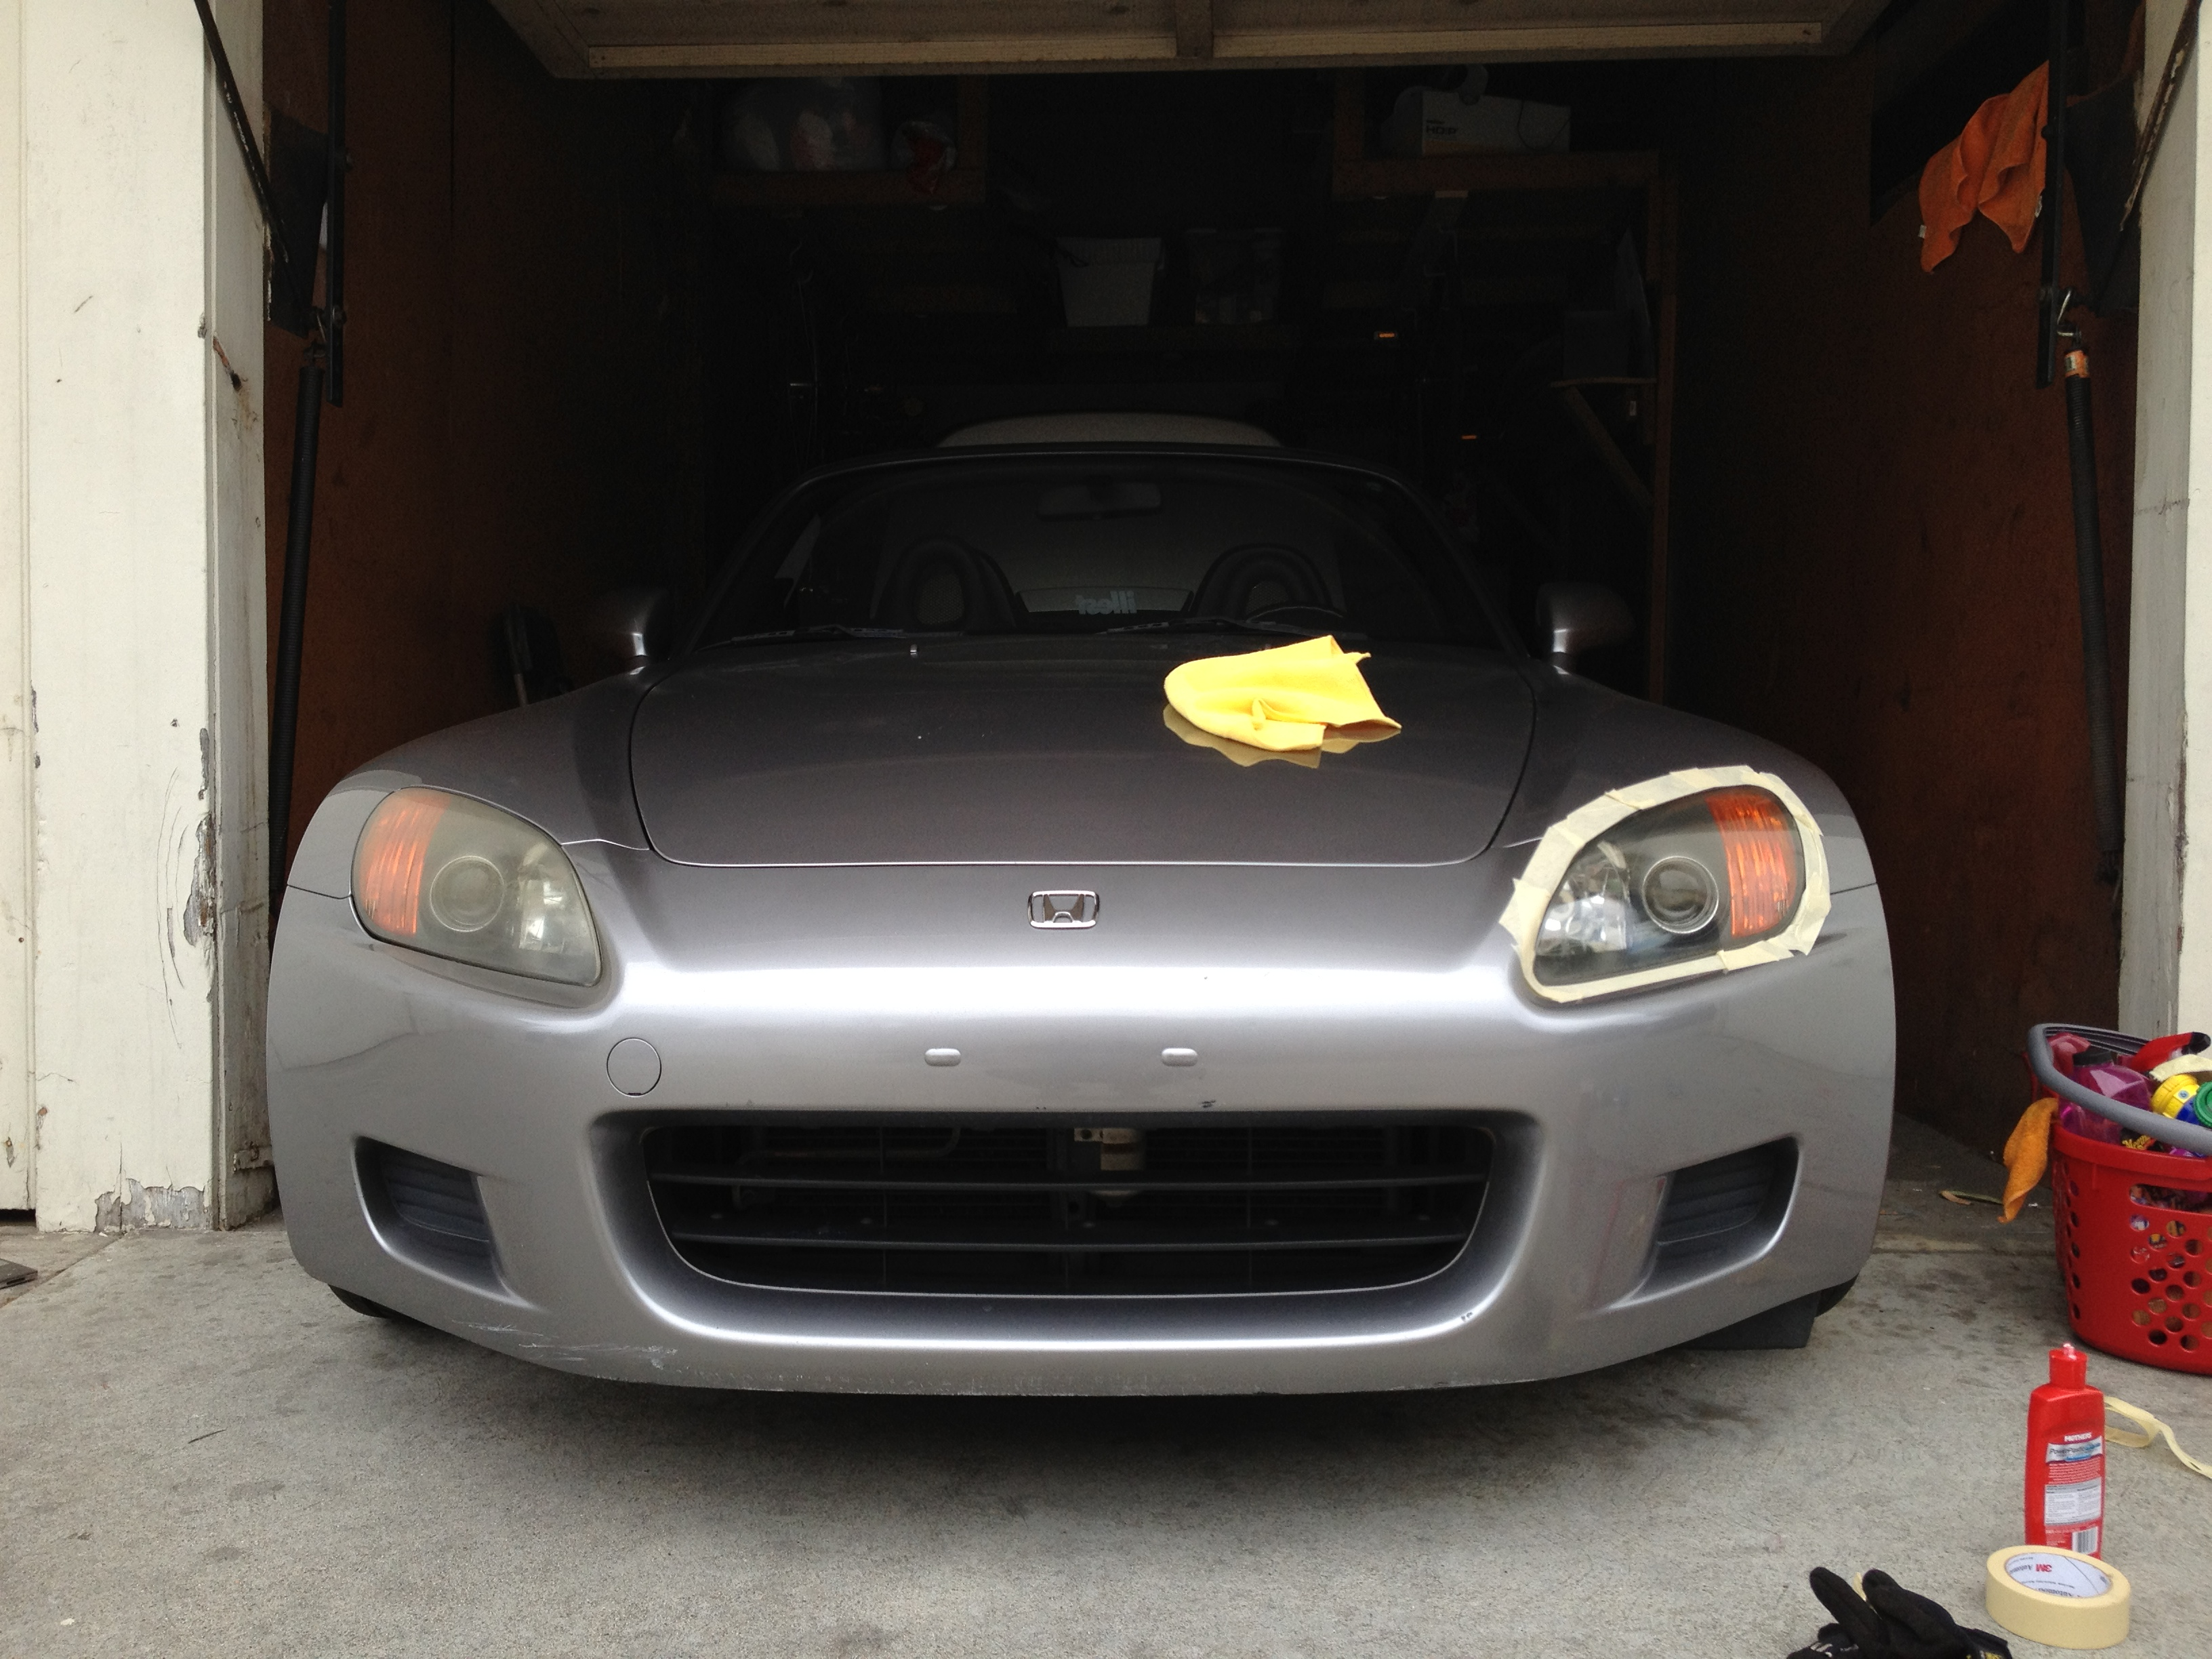 S2000 Headlight Restoration